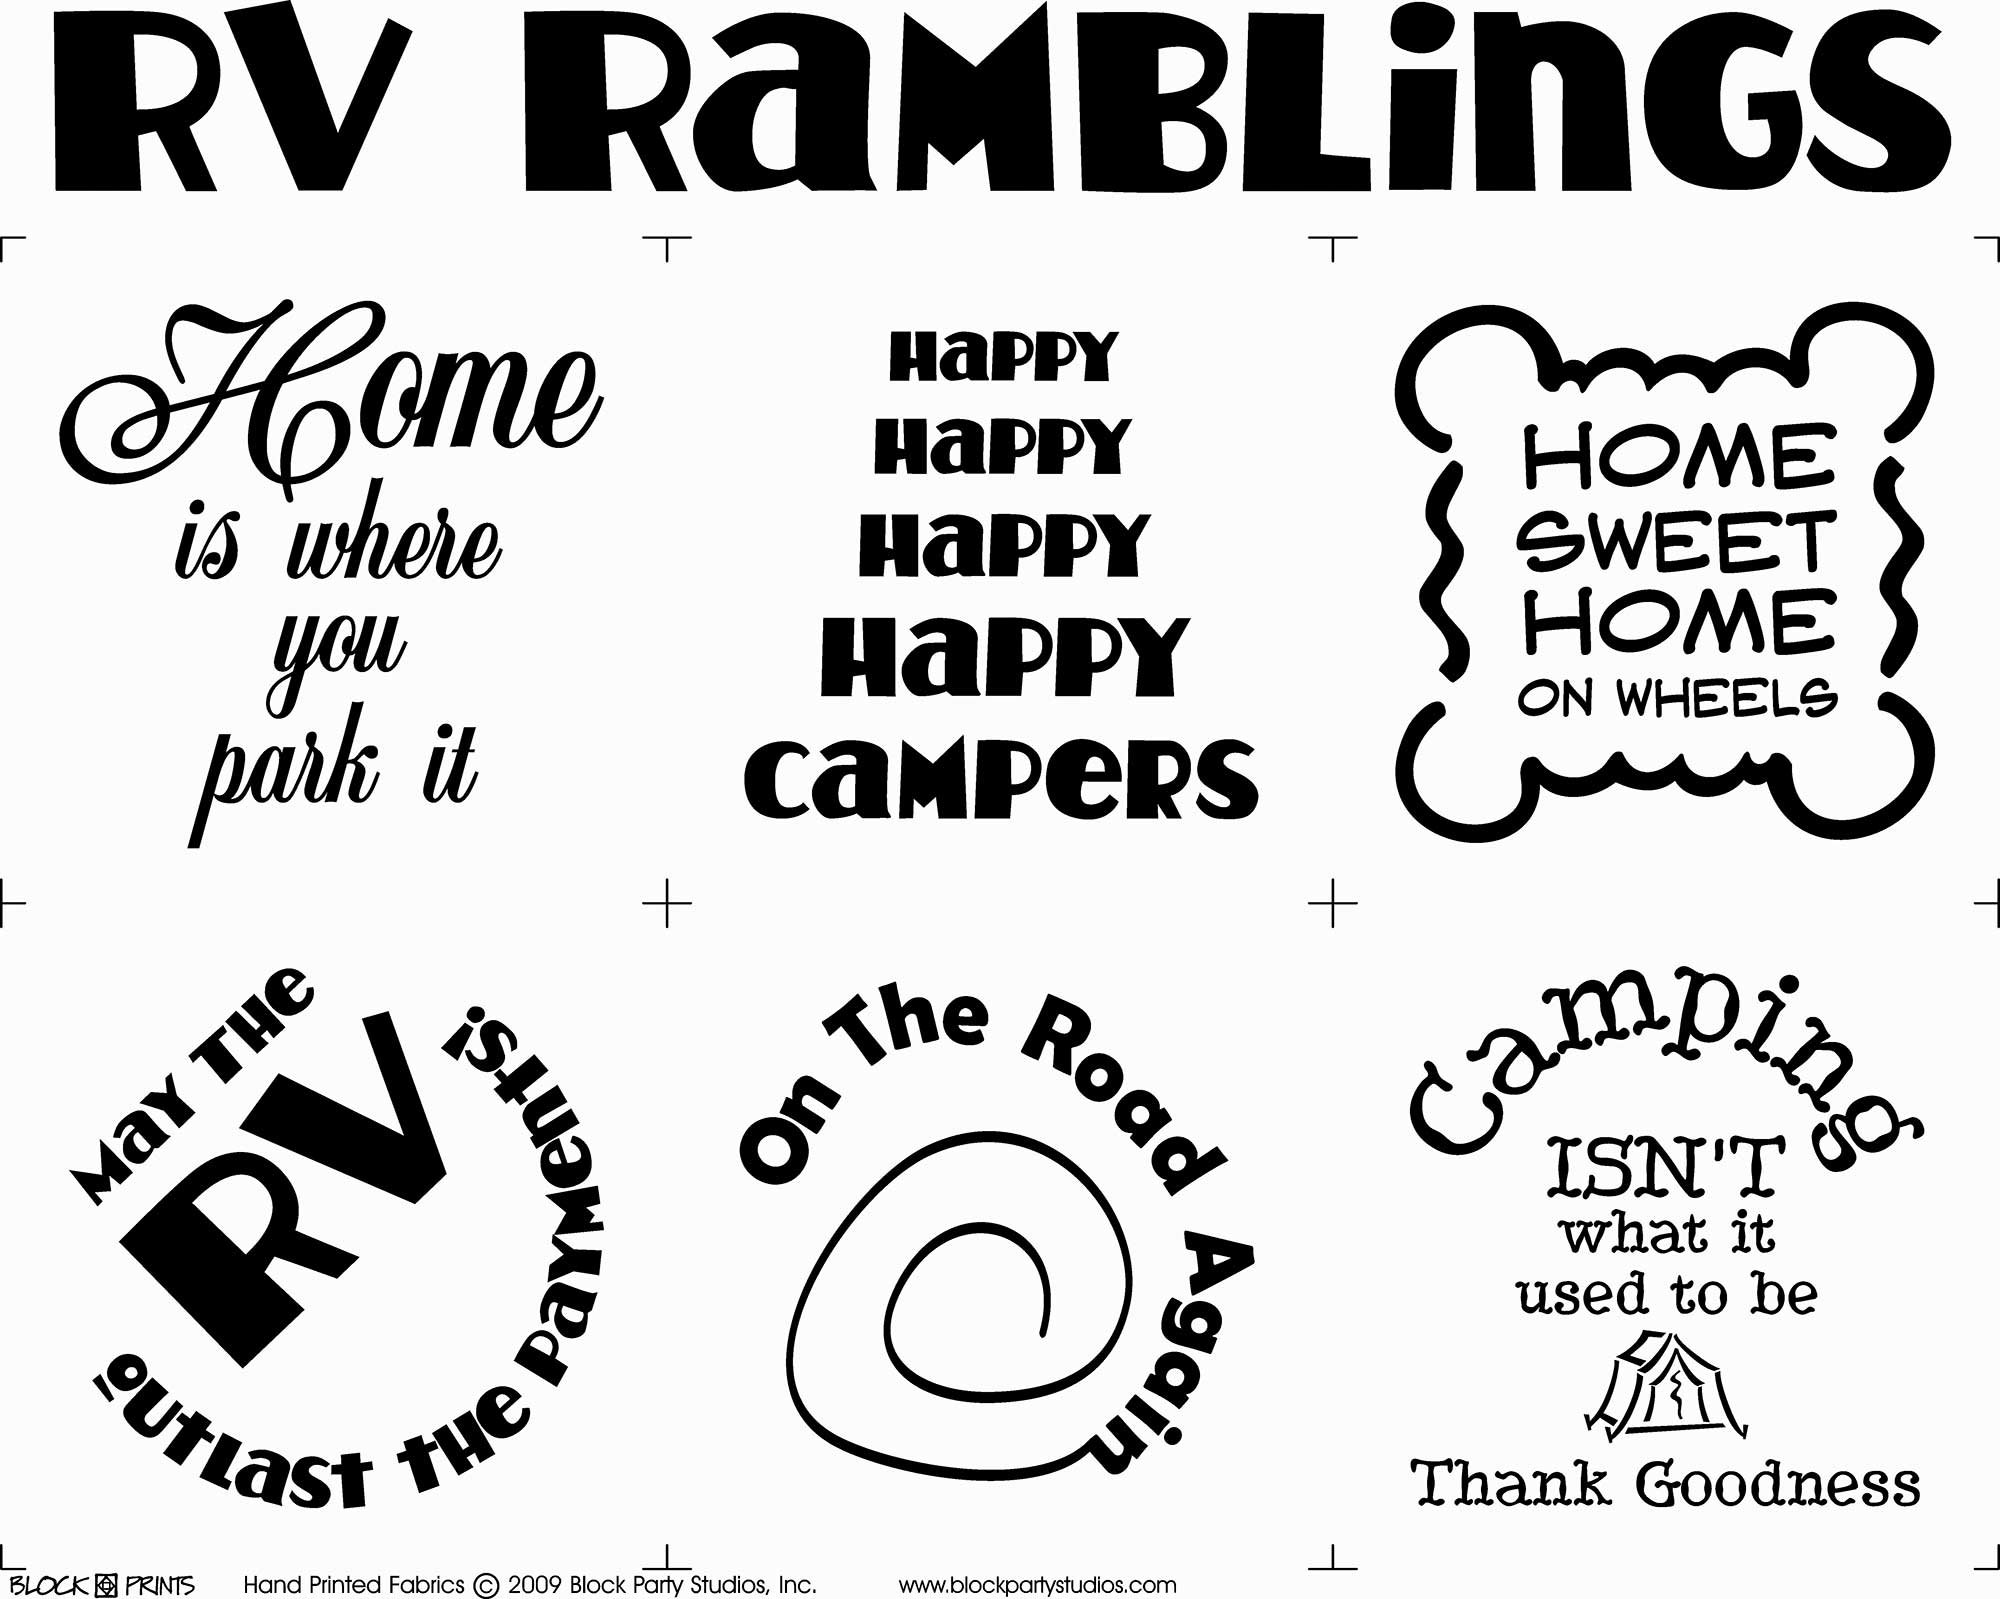 RV Ramblings Quilt Fabric Panel